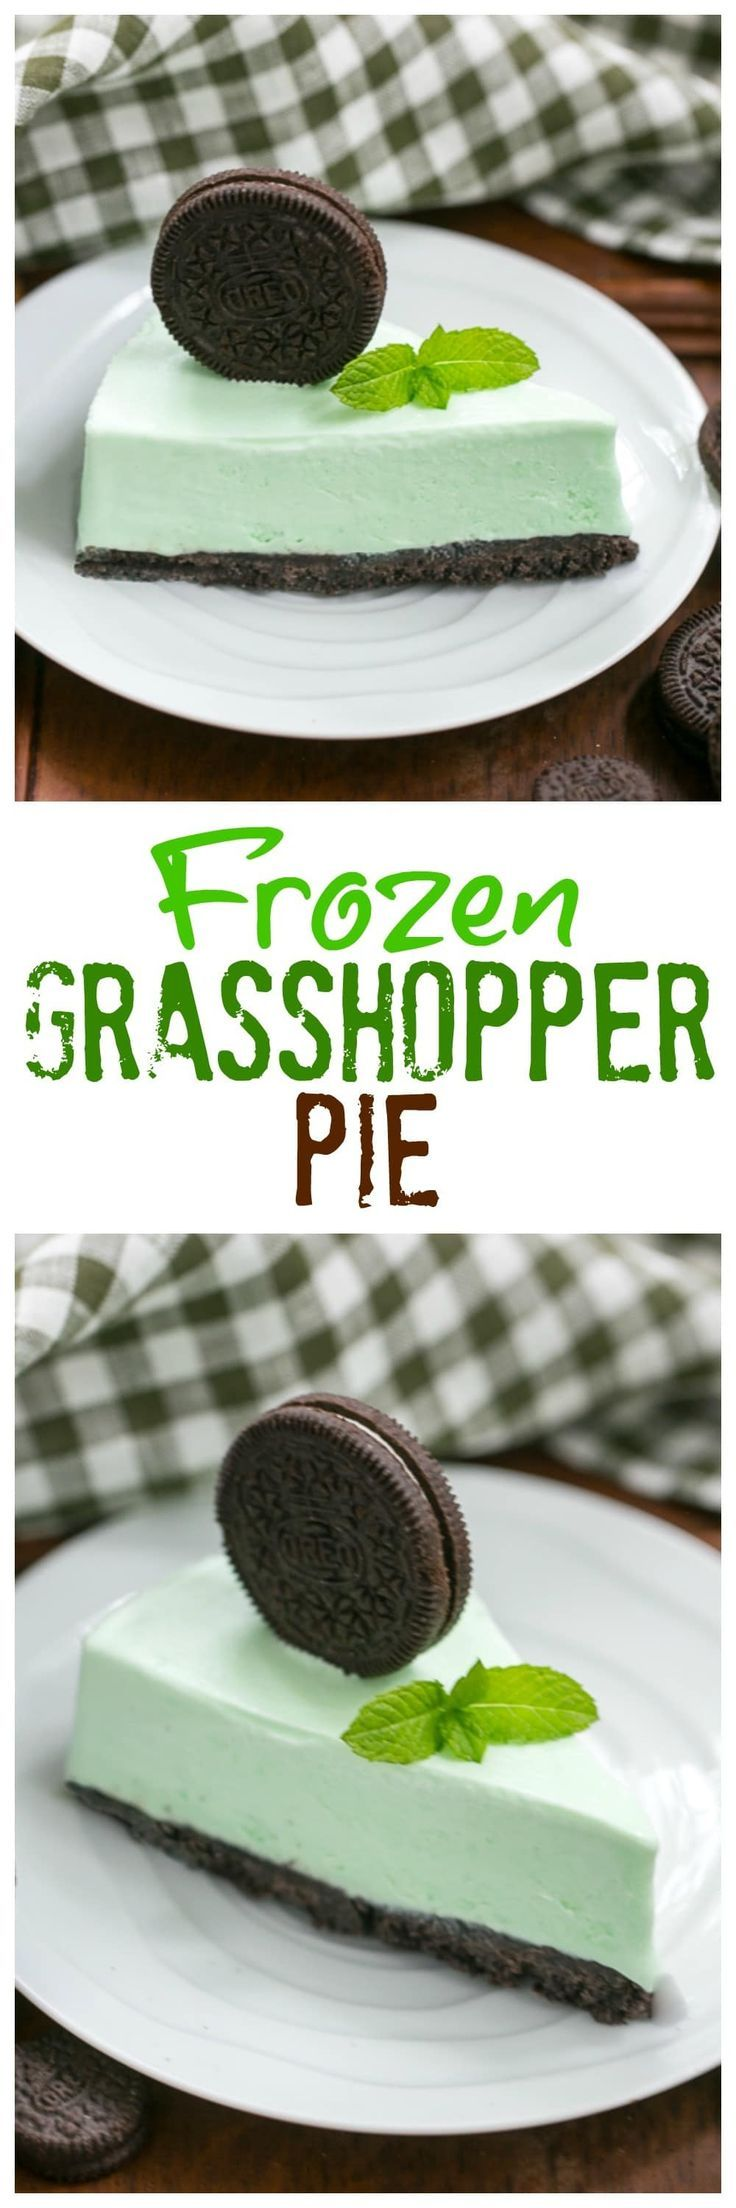 Grasshopper Pie | Mint lovers will swoon with every bite of this frozen dessert! @lizzydo